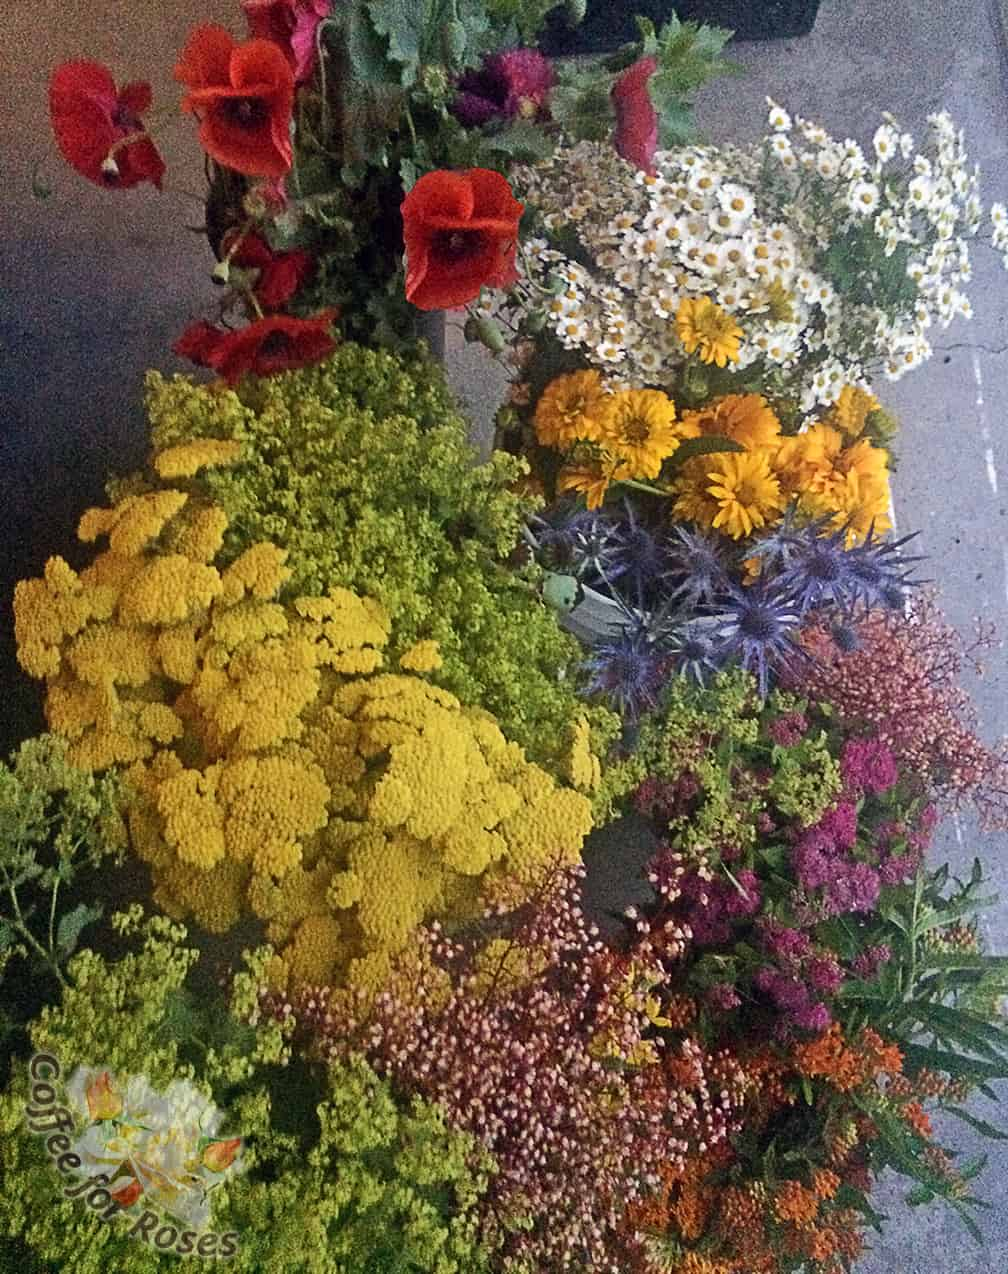 Here are some of the flowers I picked from my gardens, top to bottom: corn poppies, feverfew, heliopsis, lady's mantle, yarrow, blue sea holly, heuchera, spirea, and butterfly weed.